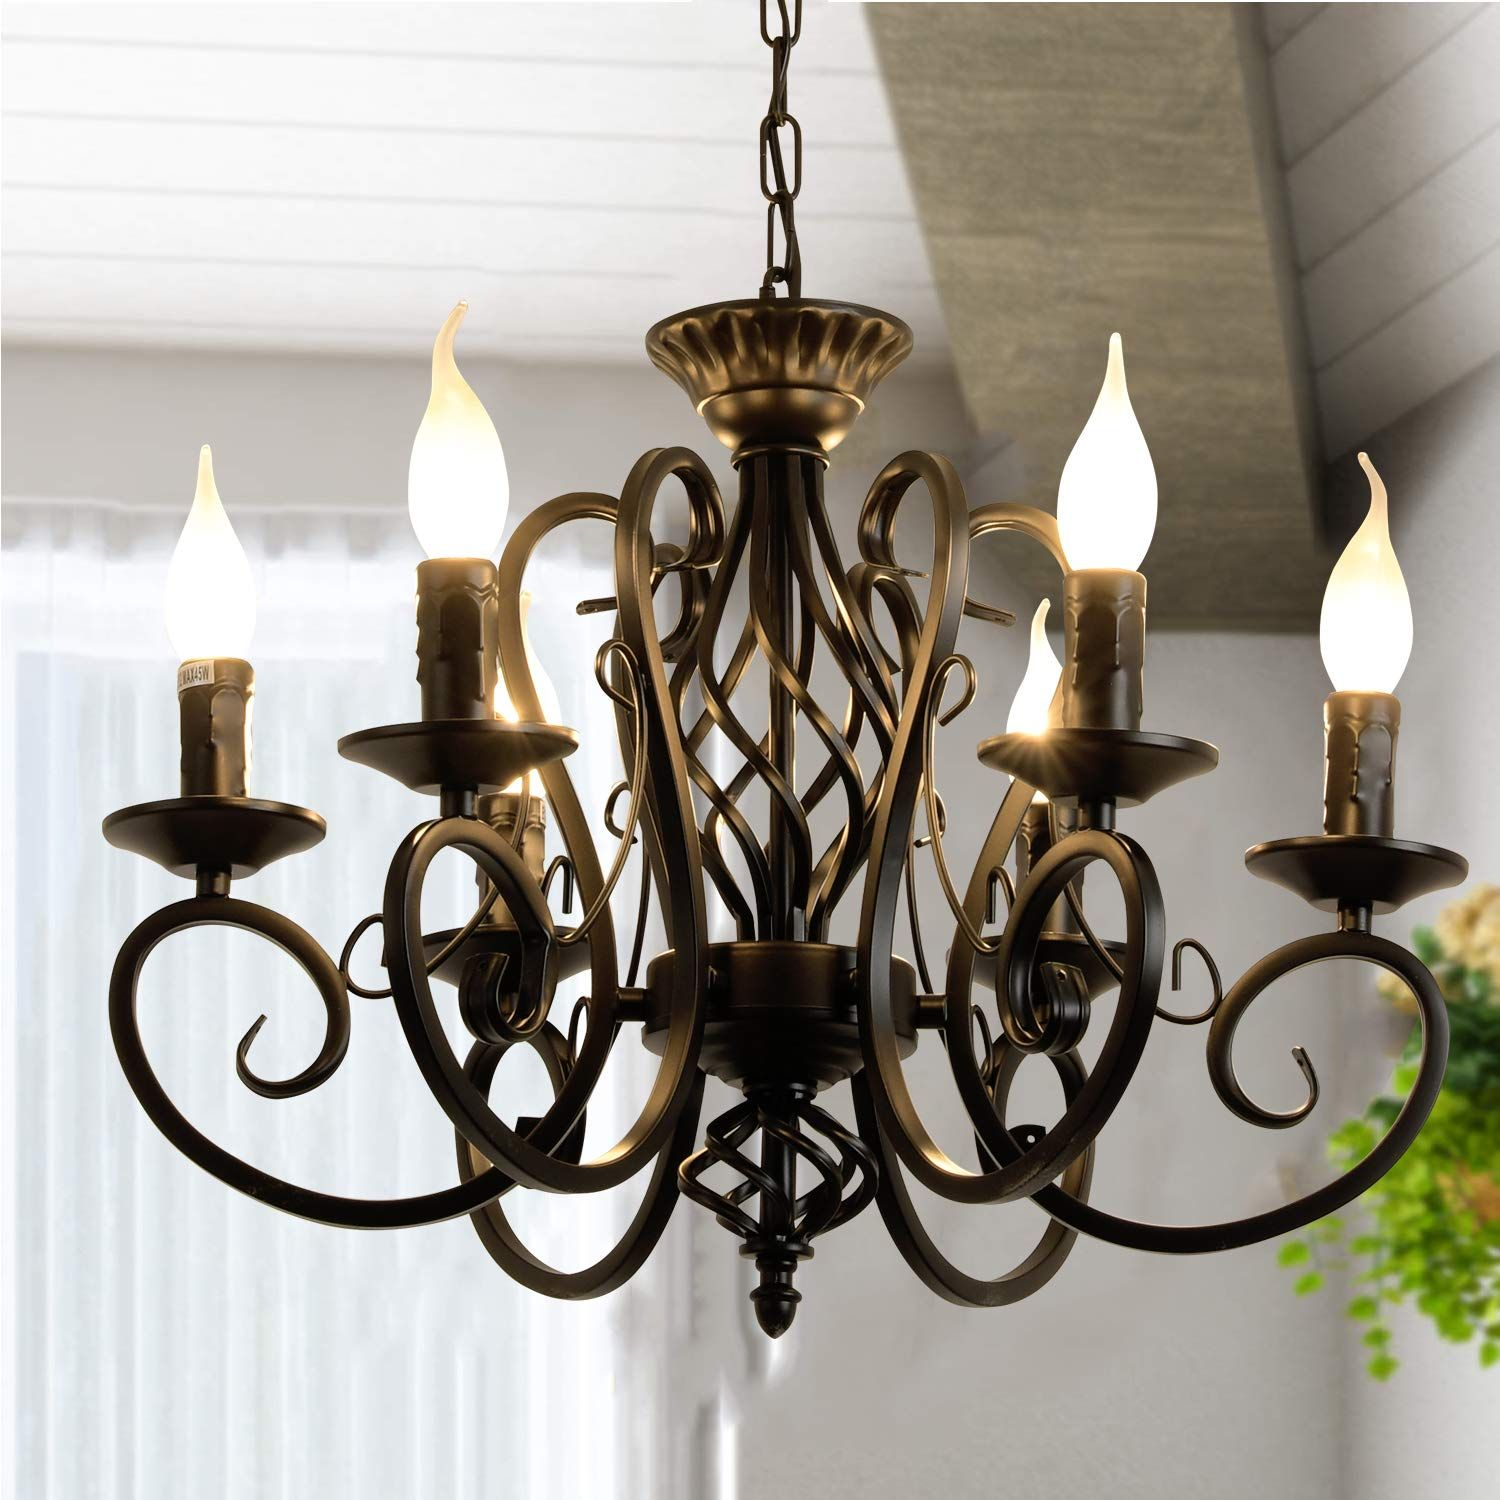 Ganeed Rustic French Country Chandelier 6 Lights Farmhouse Candle Iron Chandeliers Vintage Metal In 2020 French Country Chandelier Country Chandelier Iron Chandeliers